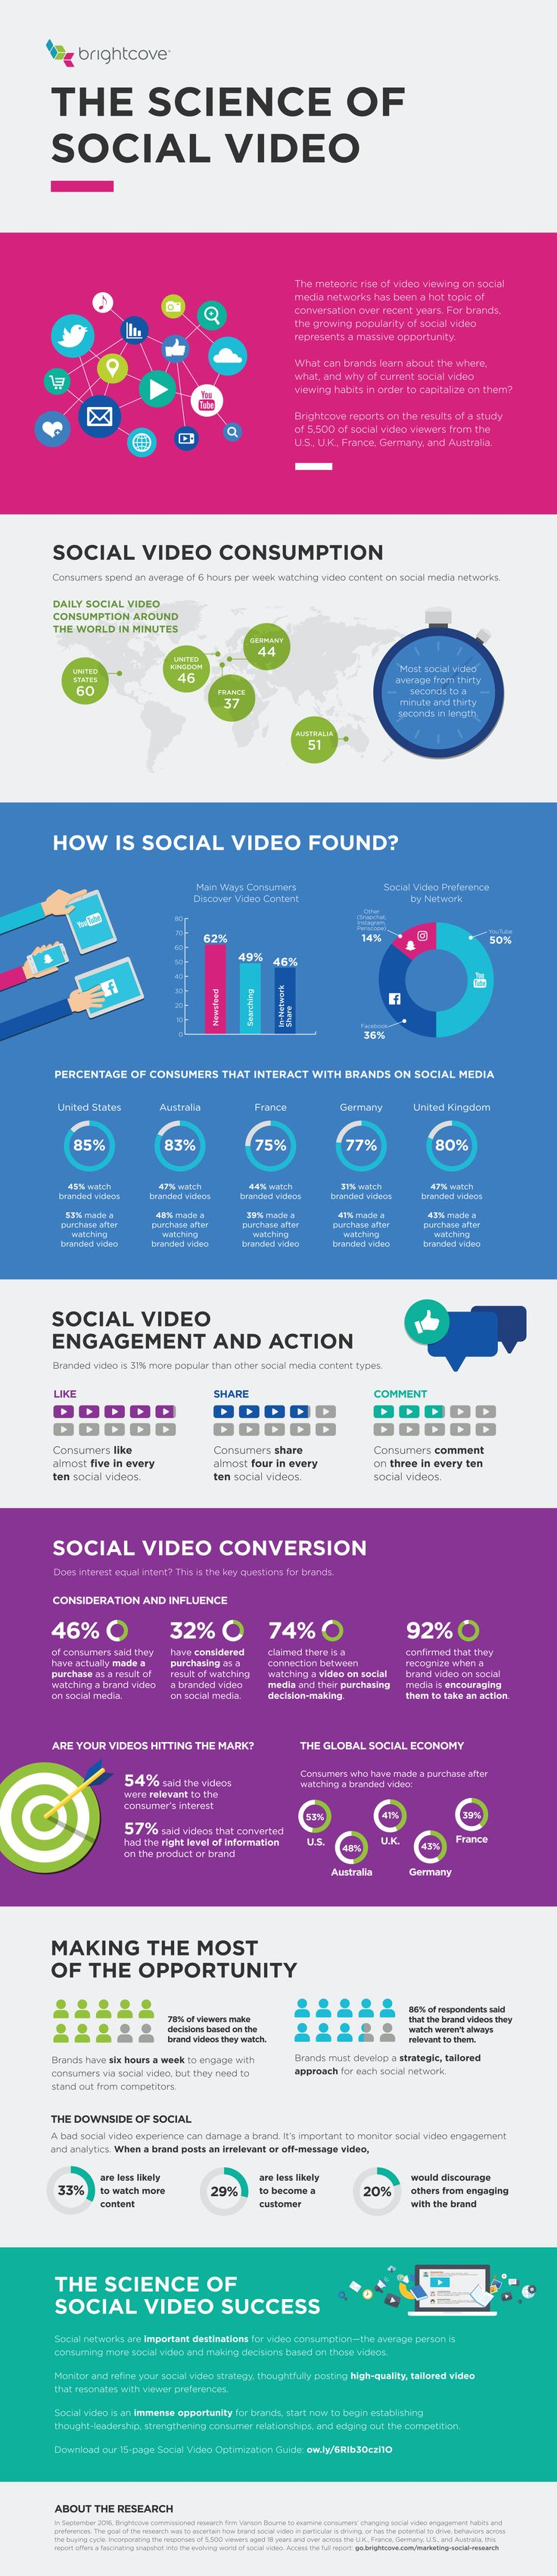 The Science of Social Video [Infographic]